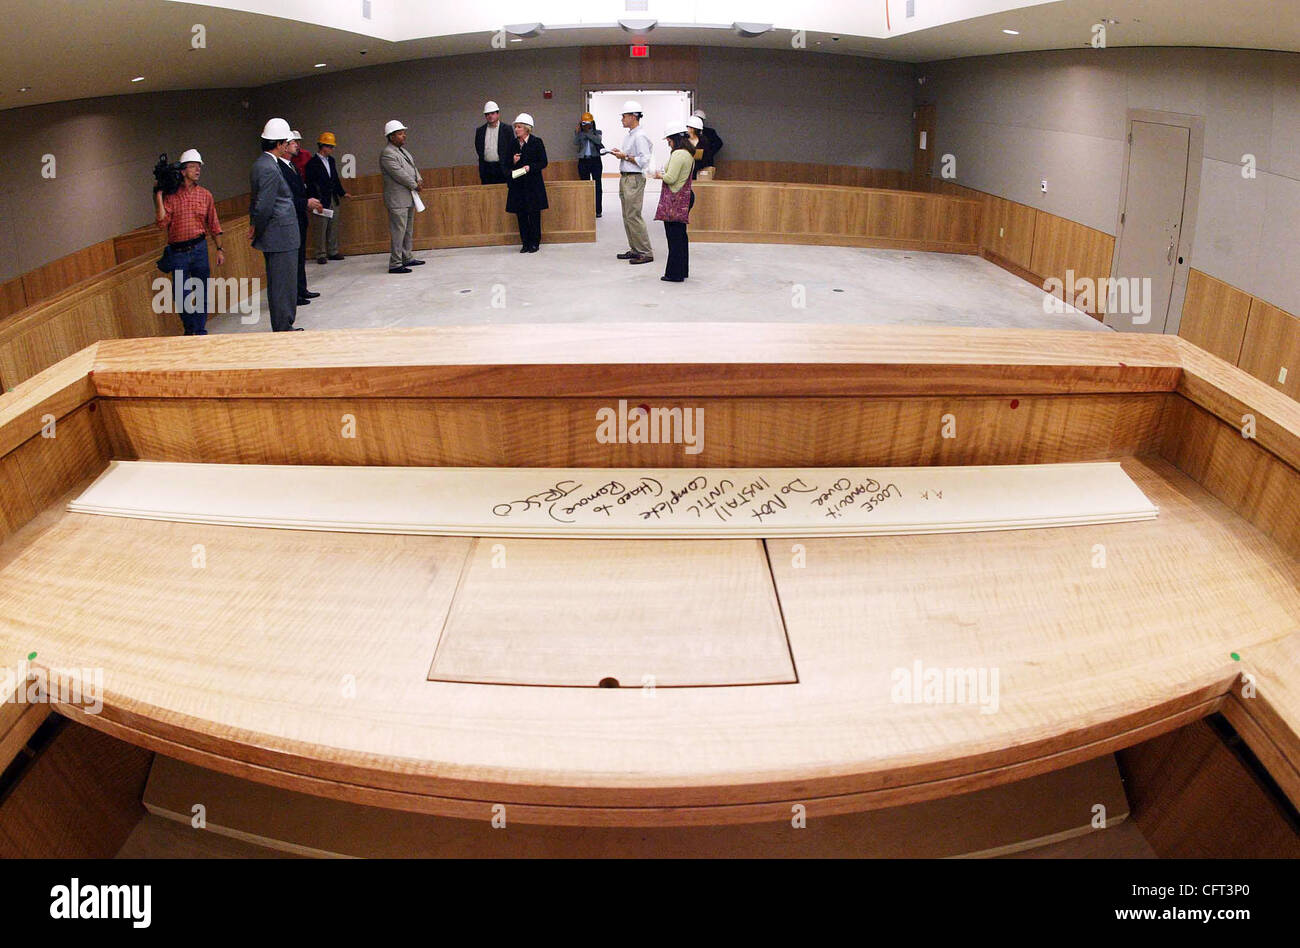 Officials tour one of the courtrooms at the new juvenile hall on Thursday, Dec. 7, 2006, in San Leandro, Calif. - Stock Image